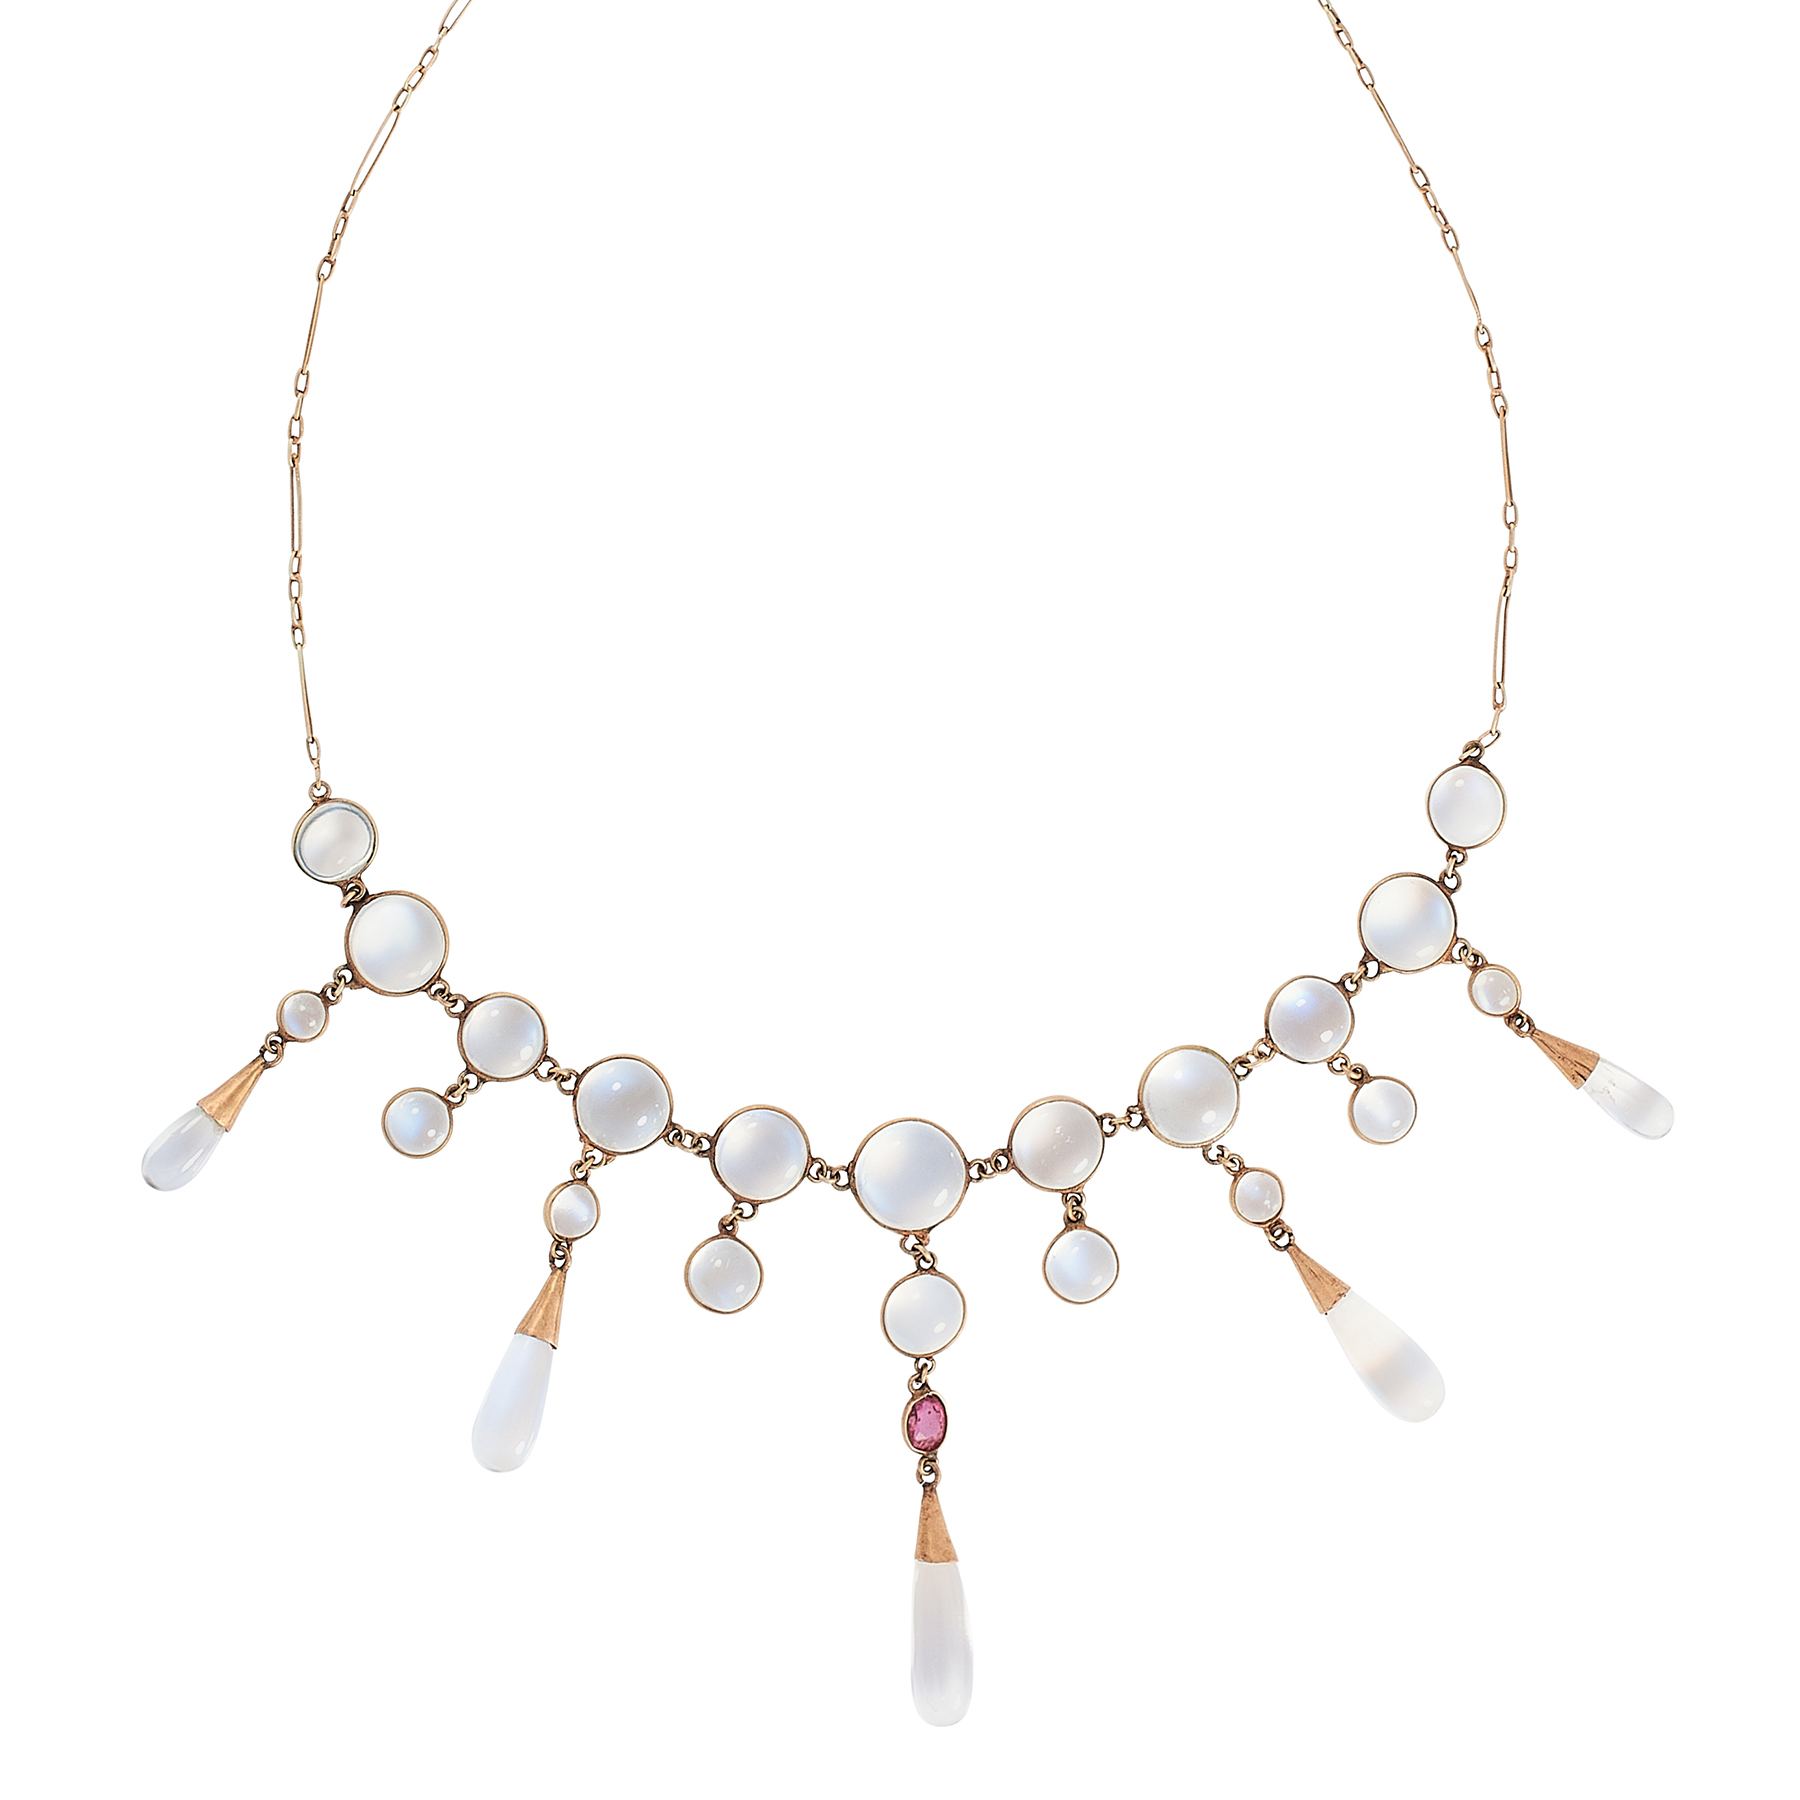 AN ANTIQUE MOONSTONE AND RUBY NECKLACE in yellow gold, comprising a row of round cabochon